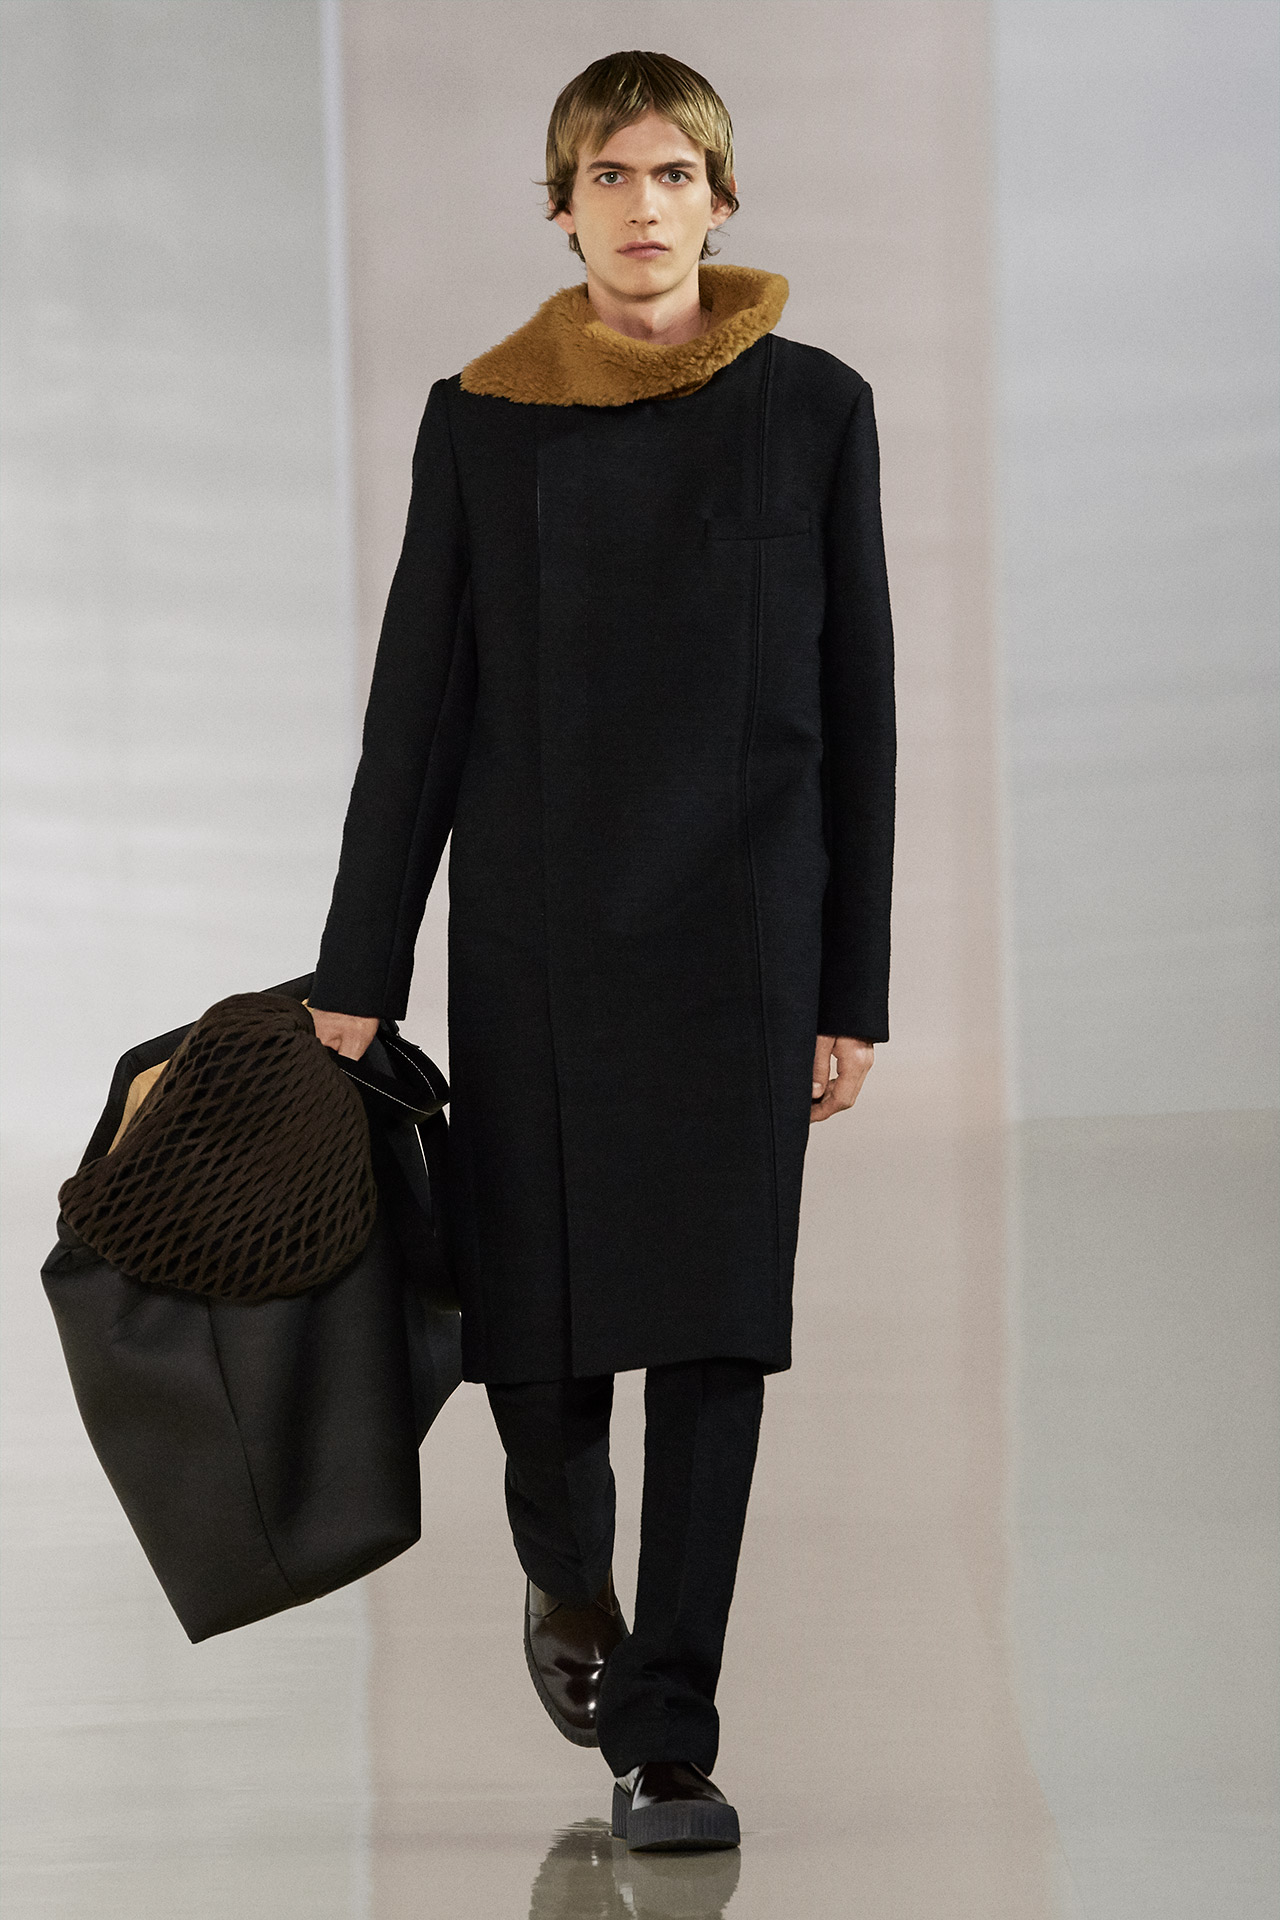 Look Fall/Winter 2020, image 22